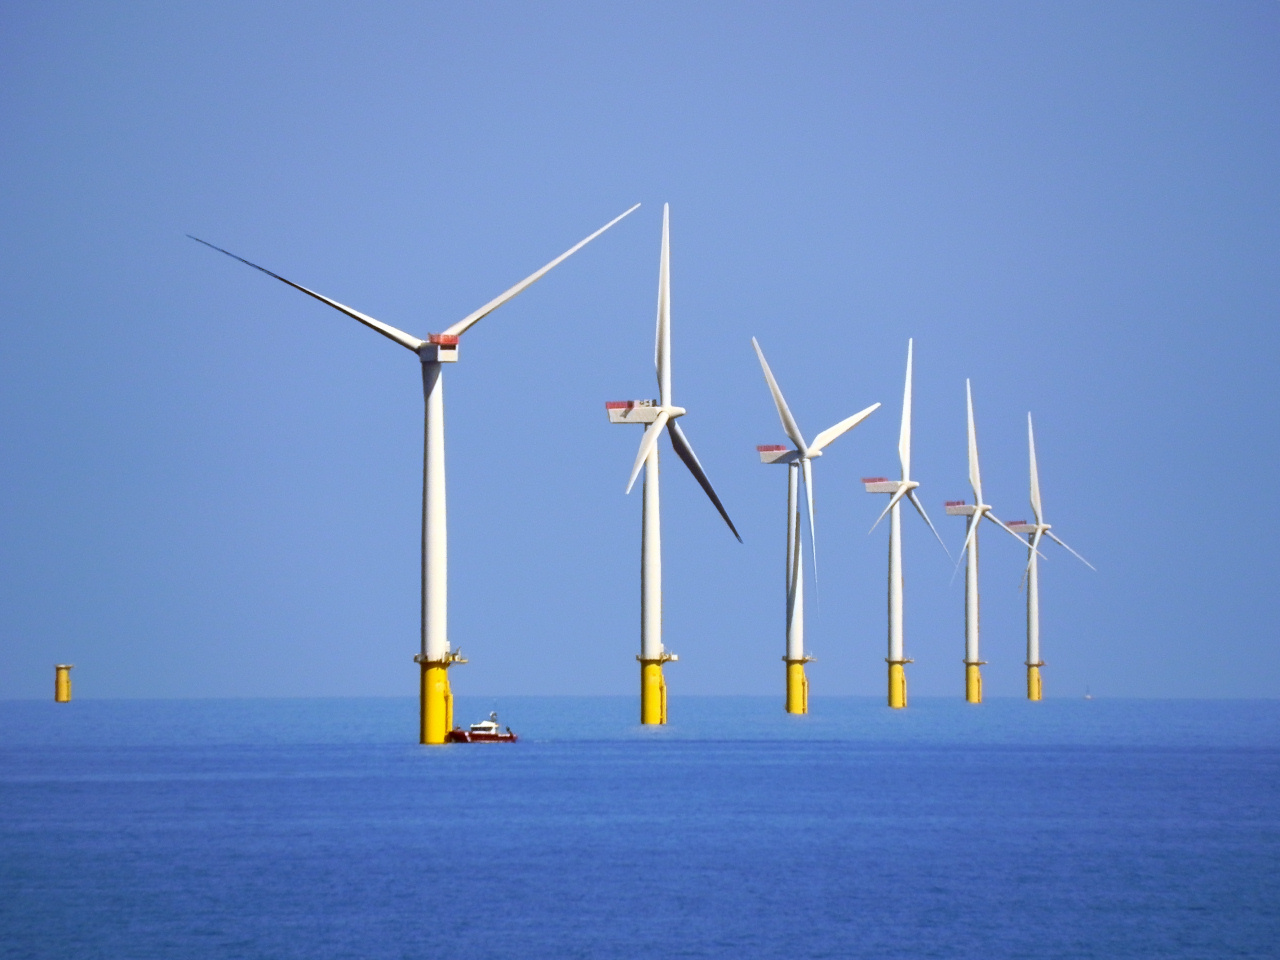 The Watney wind farm in the Irish Sea is one of the largest offshore wind farms in the world